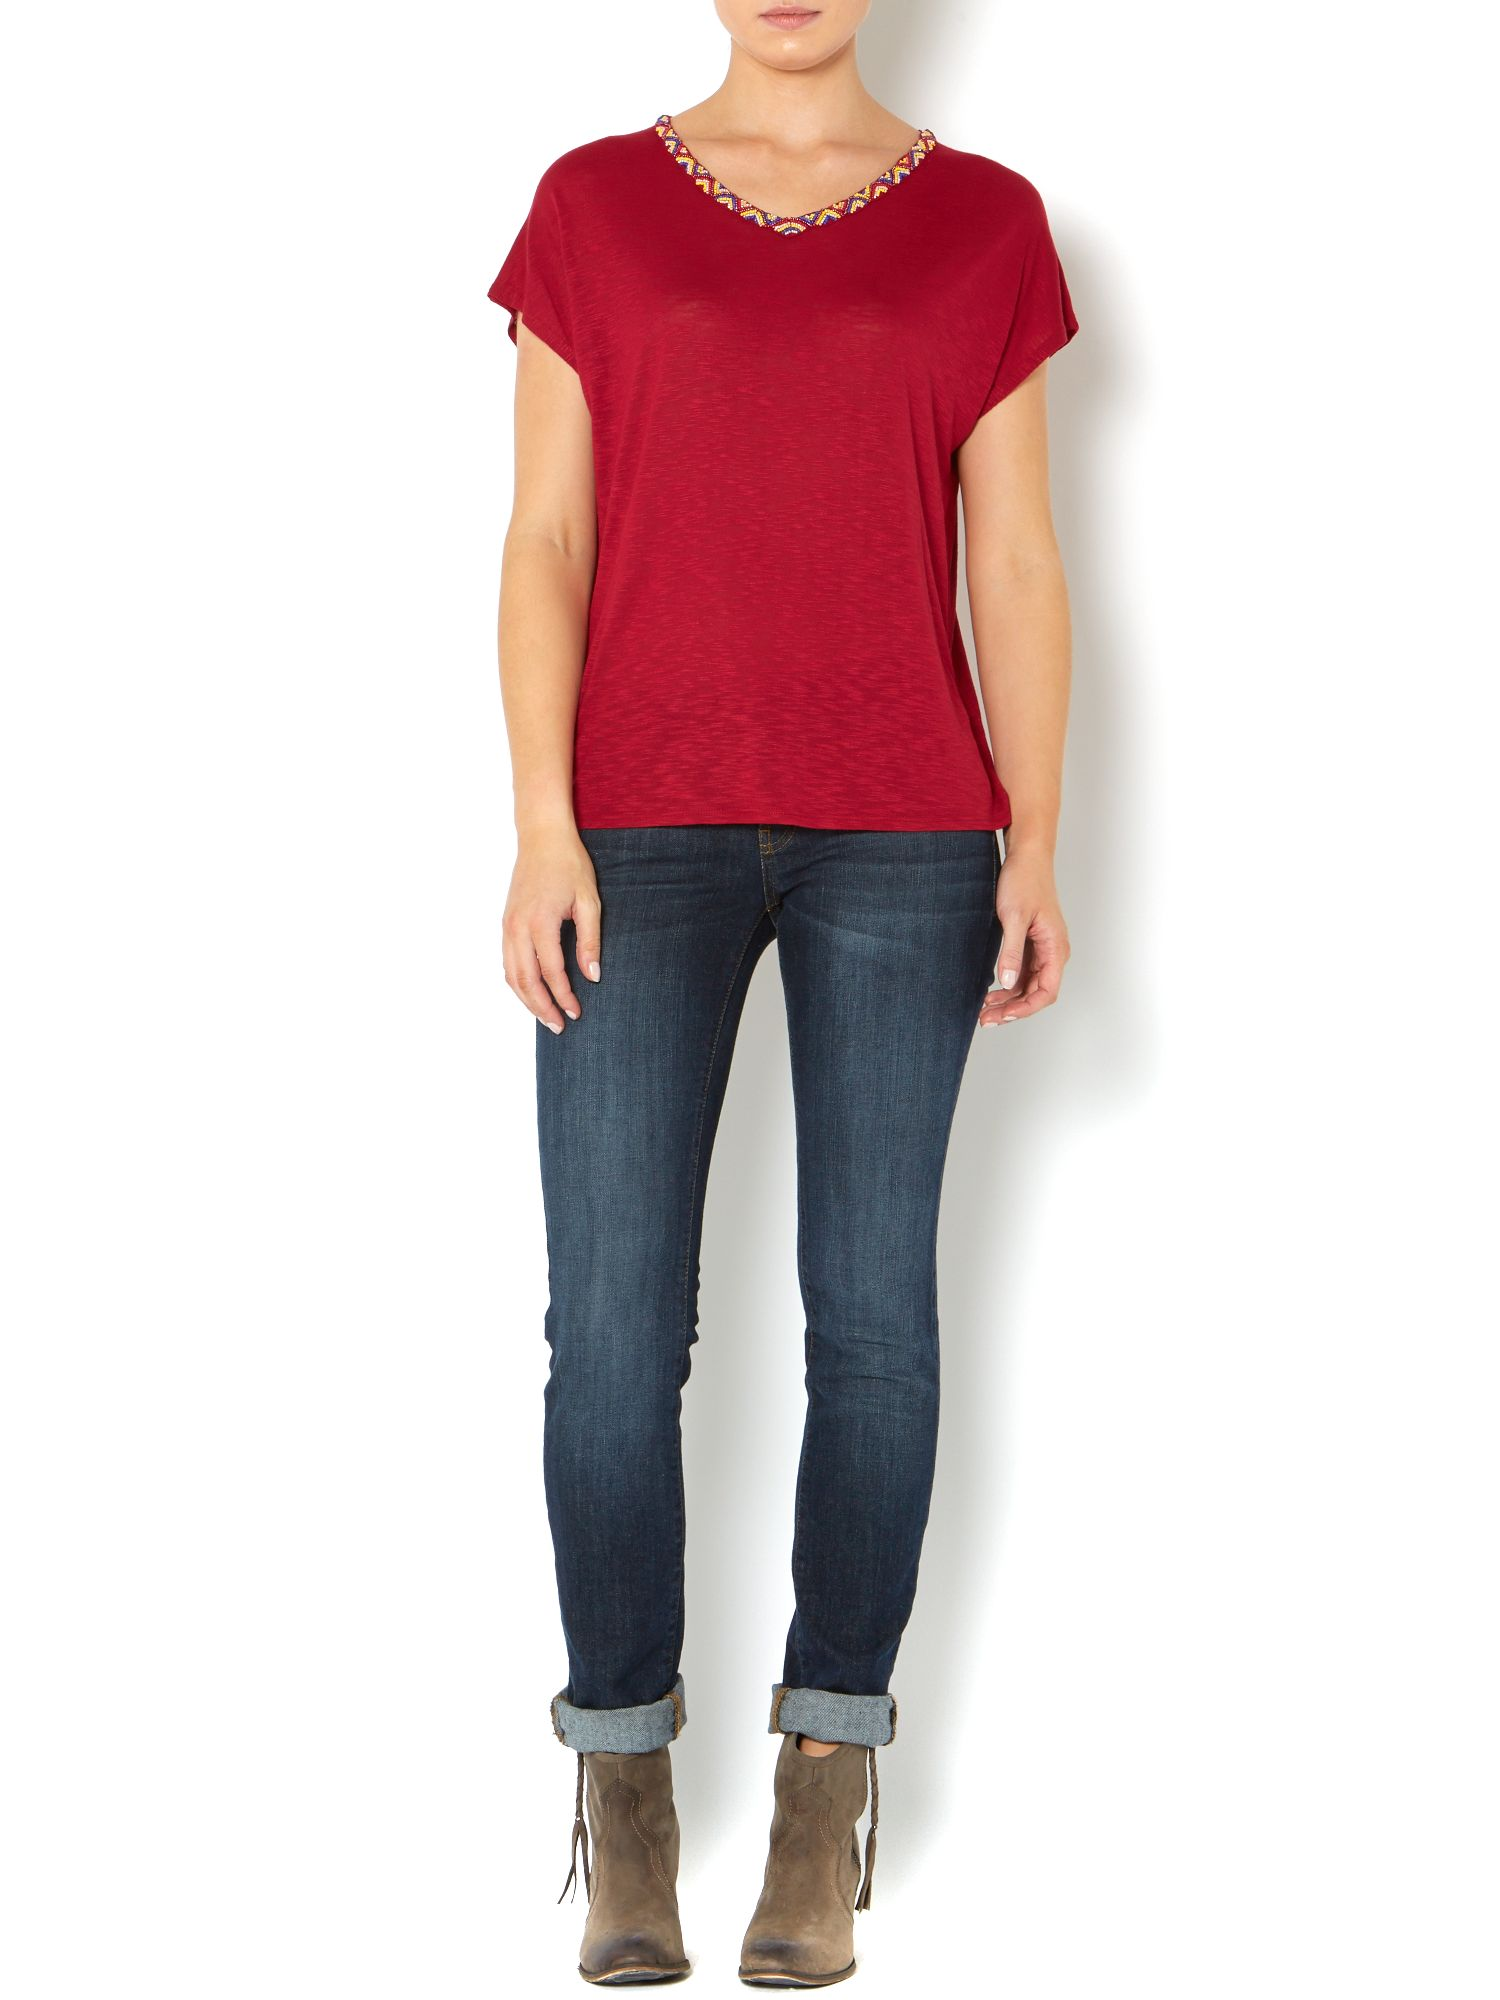 Apache embellished neck trim tee